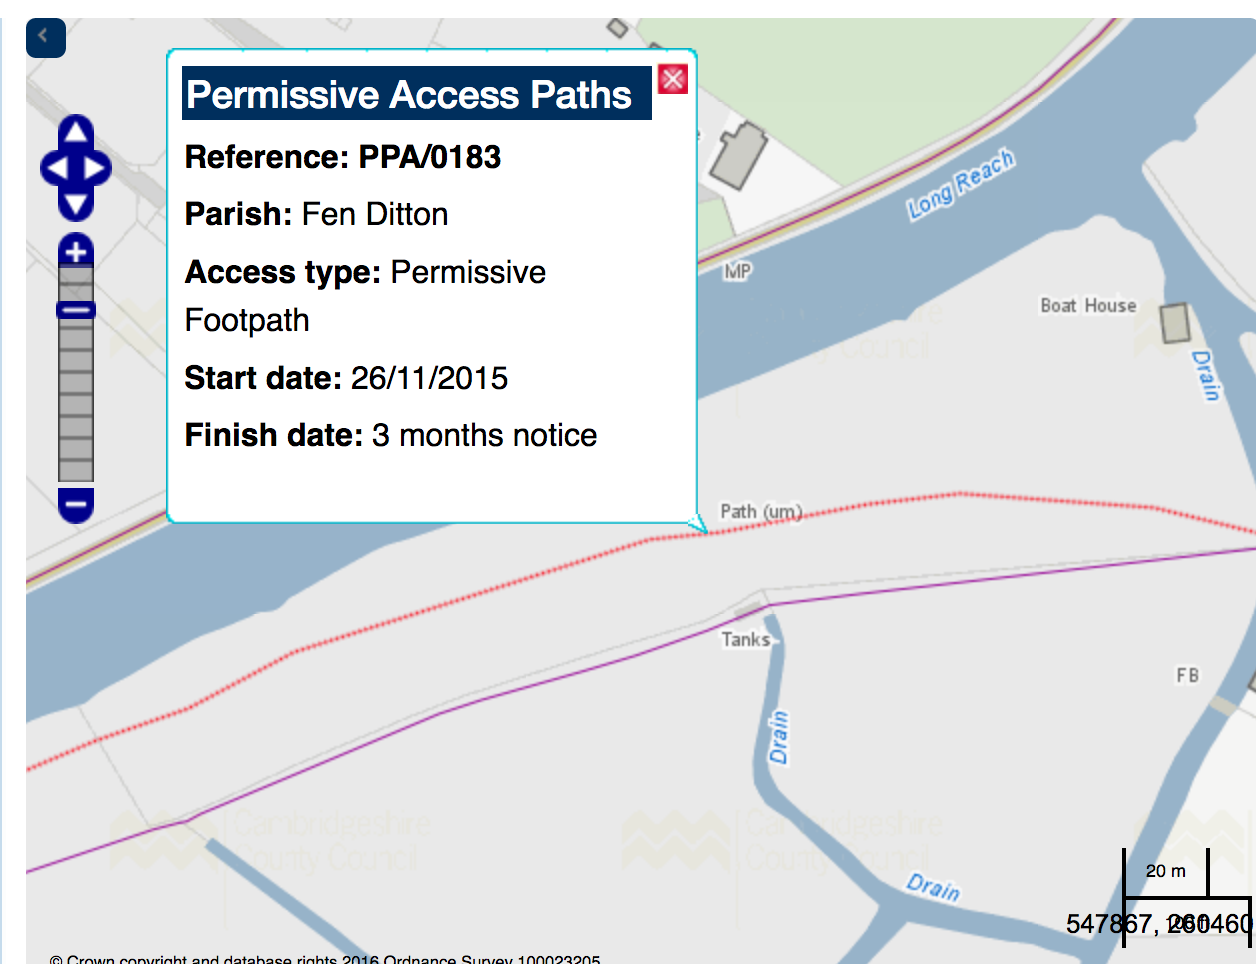 Map showing path as permissive access with label reference for the path PPA/0183